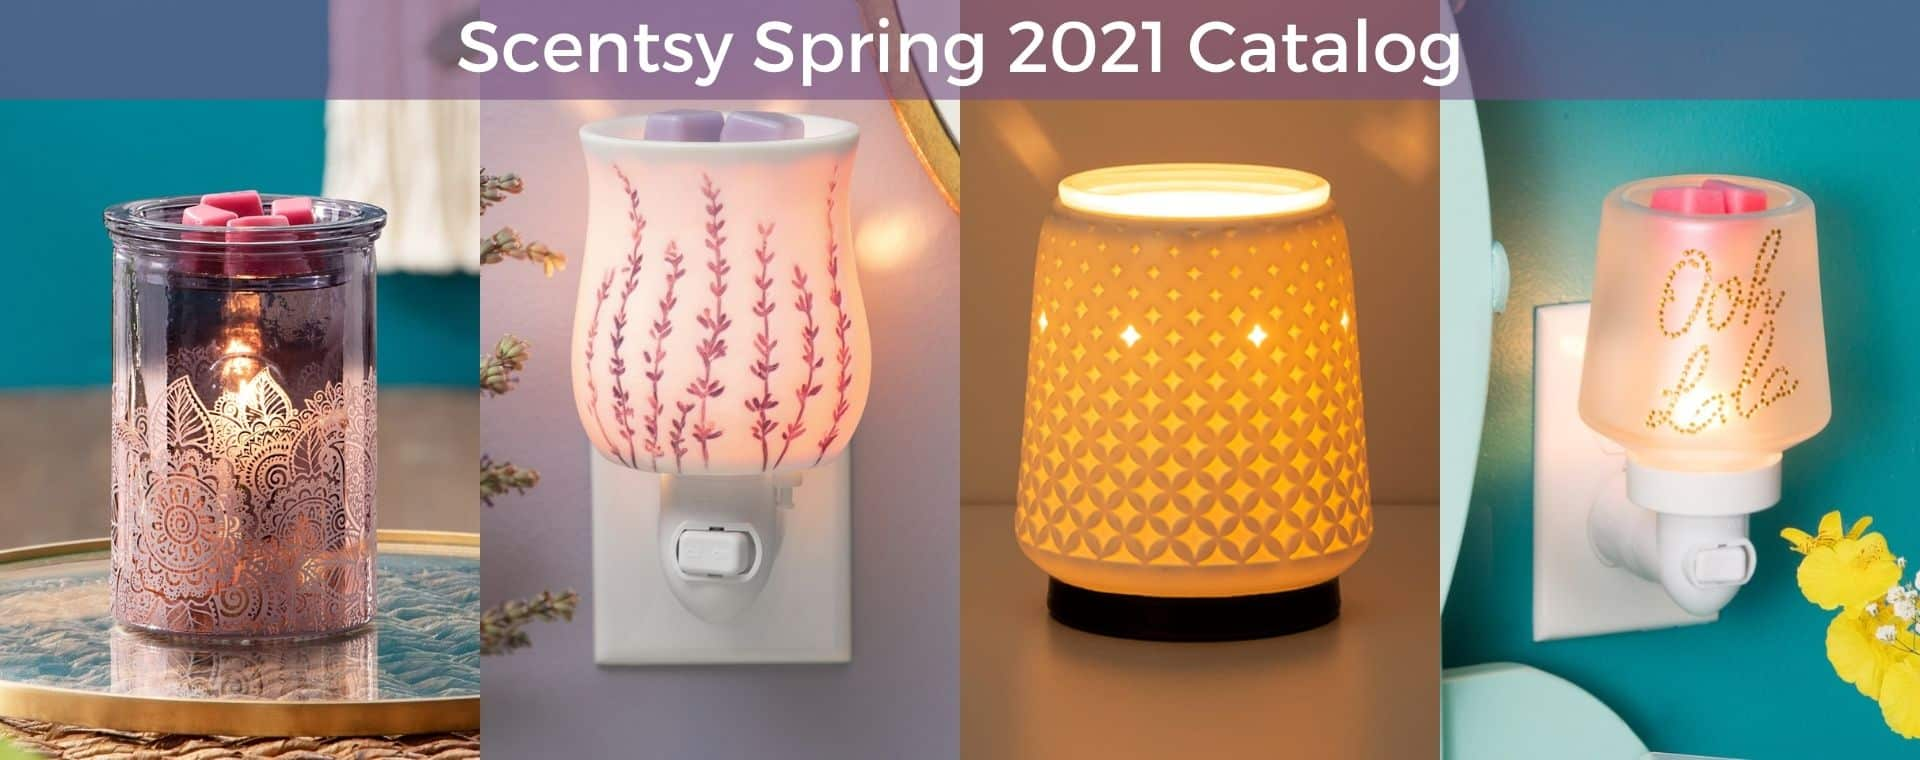 Scentsy Spring 2021 Catalog Preview 3